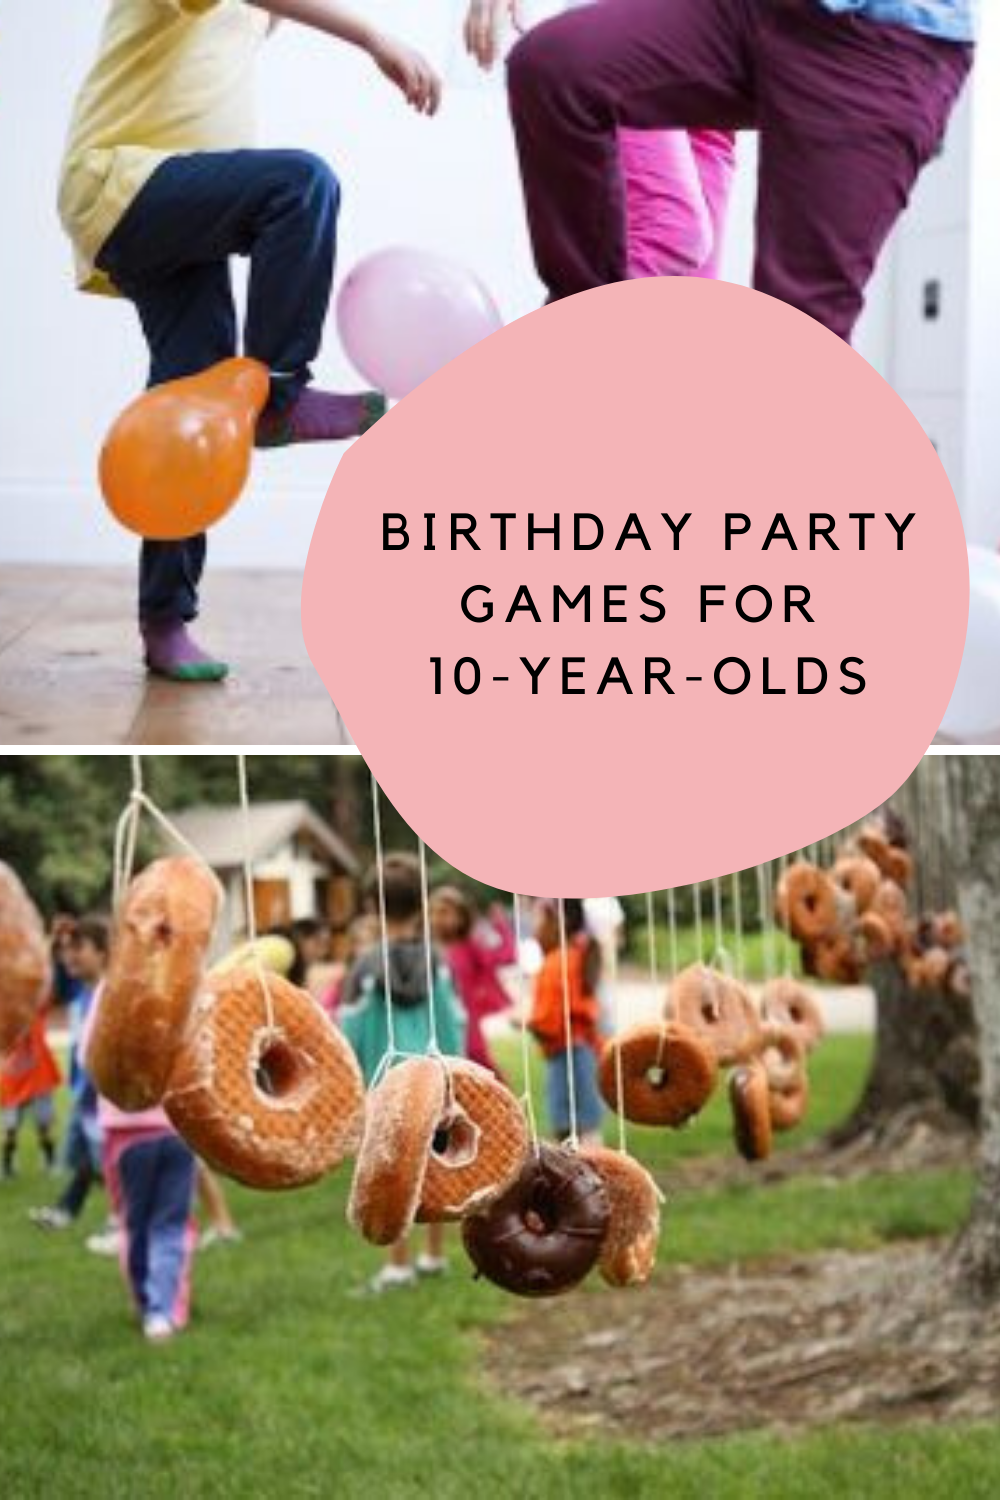 Birthday Party Games for 10-year-olds